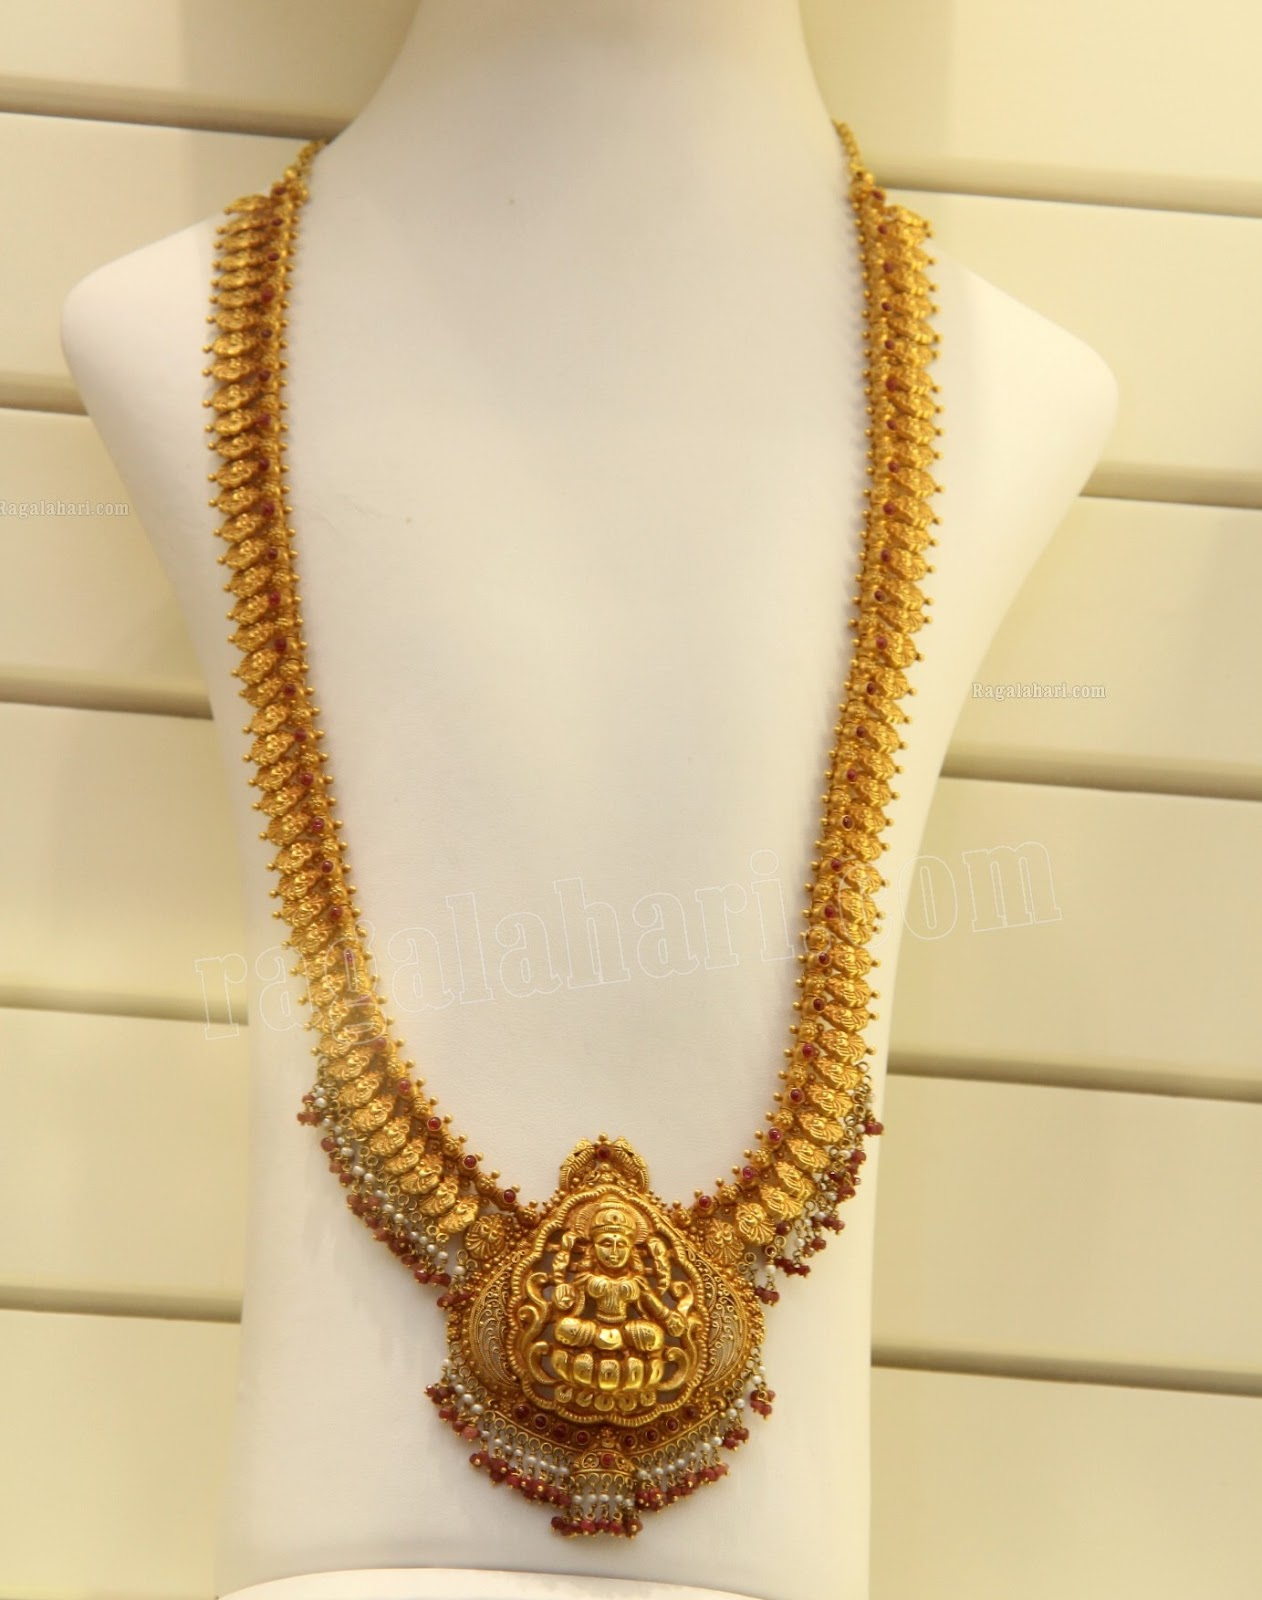 Remarkable Gold Long Chain Latest Jewelry Designs Page 37 Of 38 Jewellery Short Hairstyles For Black Women Fulllsitofus